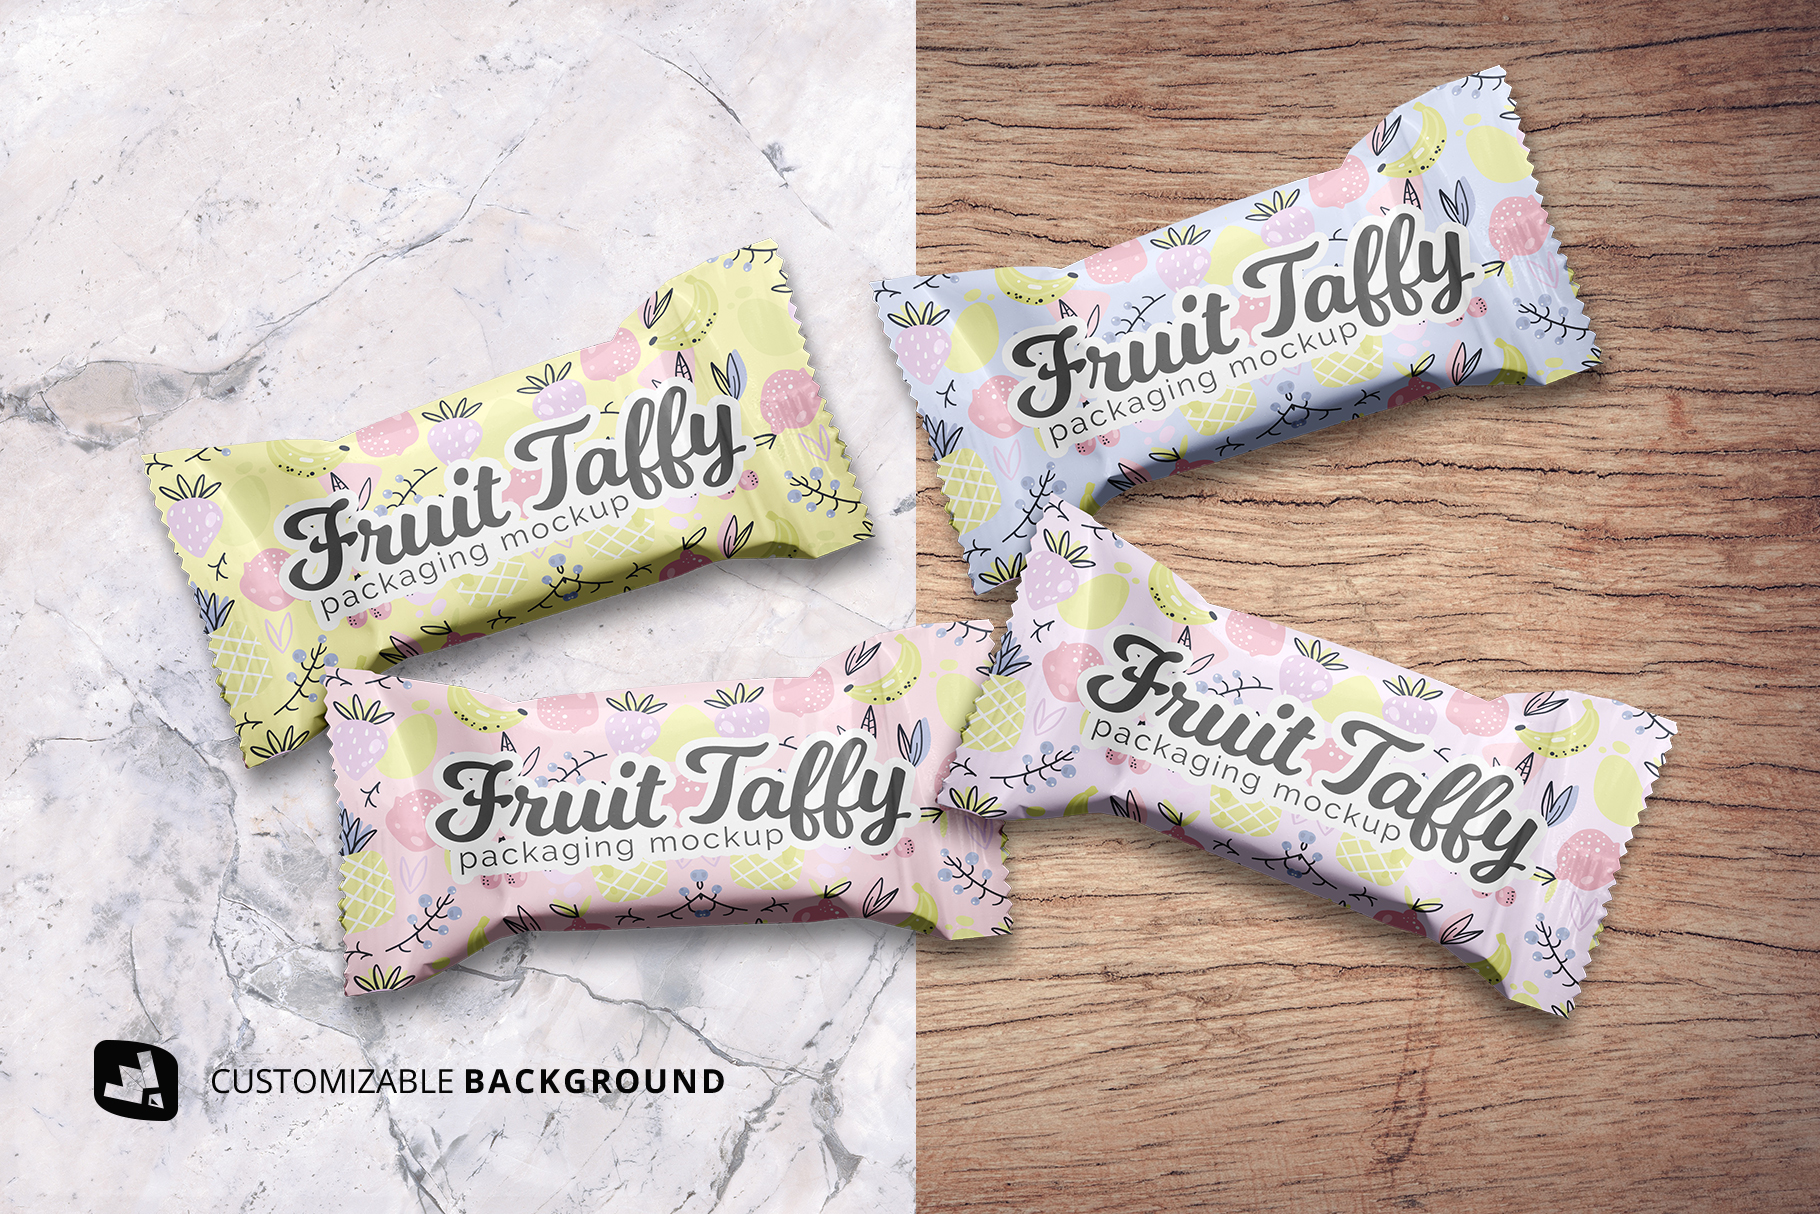 background options of the top view taffy packaging mockup